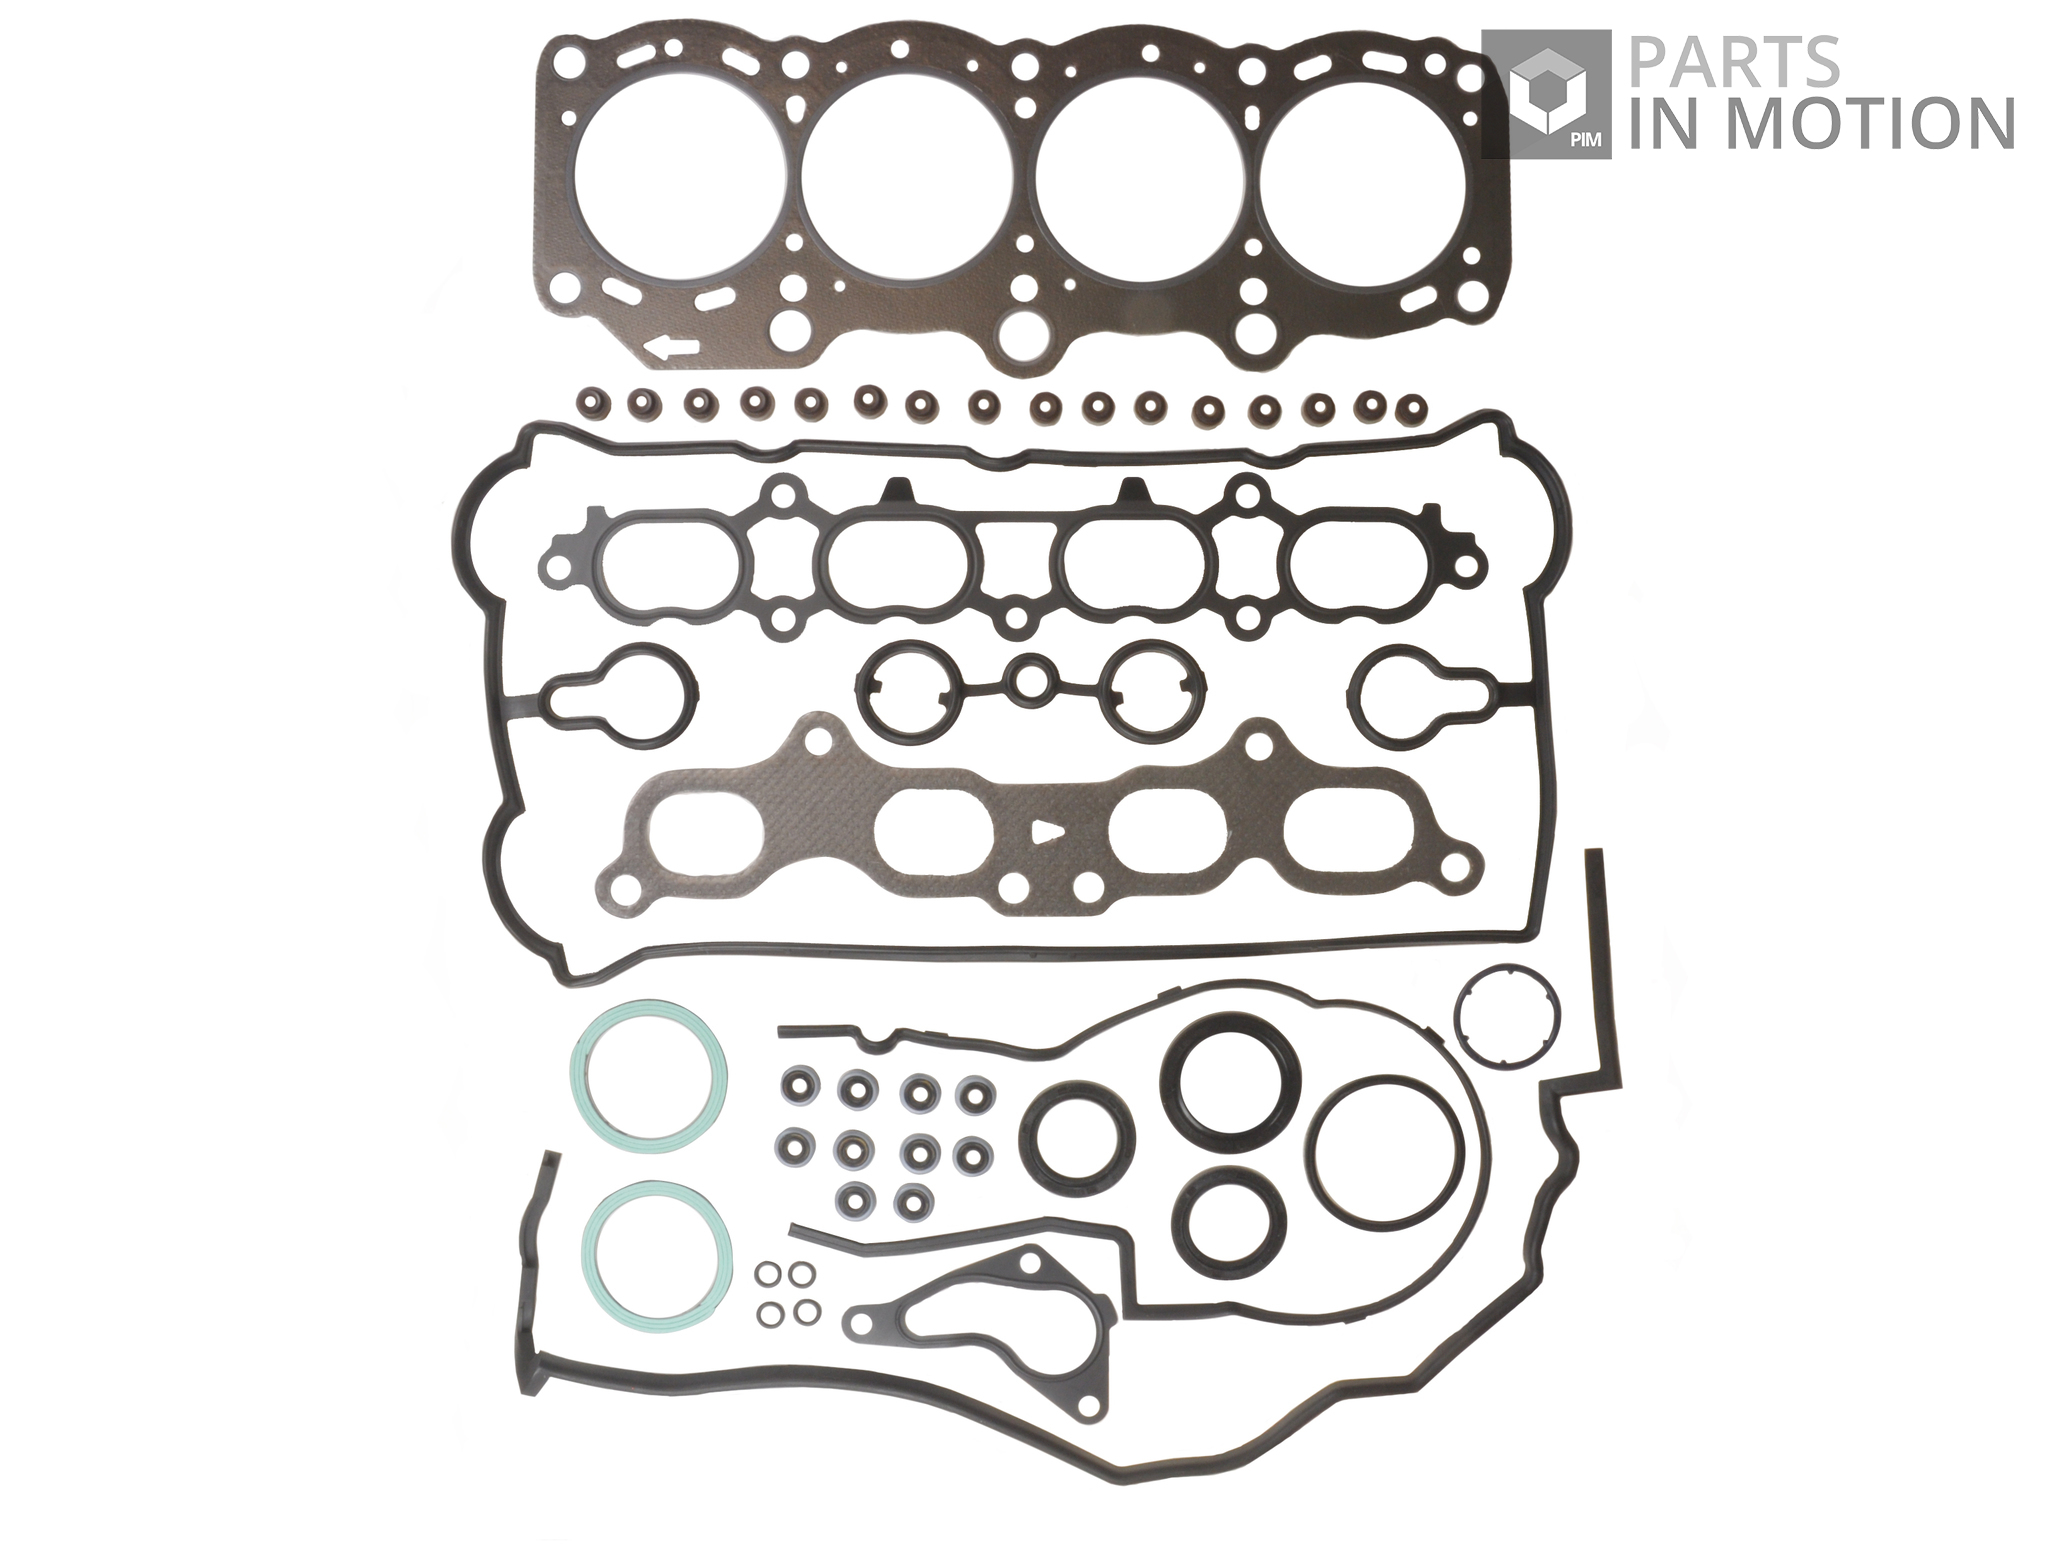 Exhaust Manifold Gasket fits TOYOTA CELICA ST202 Gti 2.0 94 to 99 3SGE BGA New